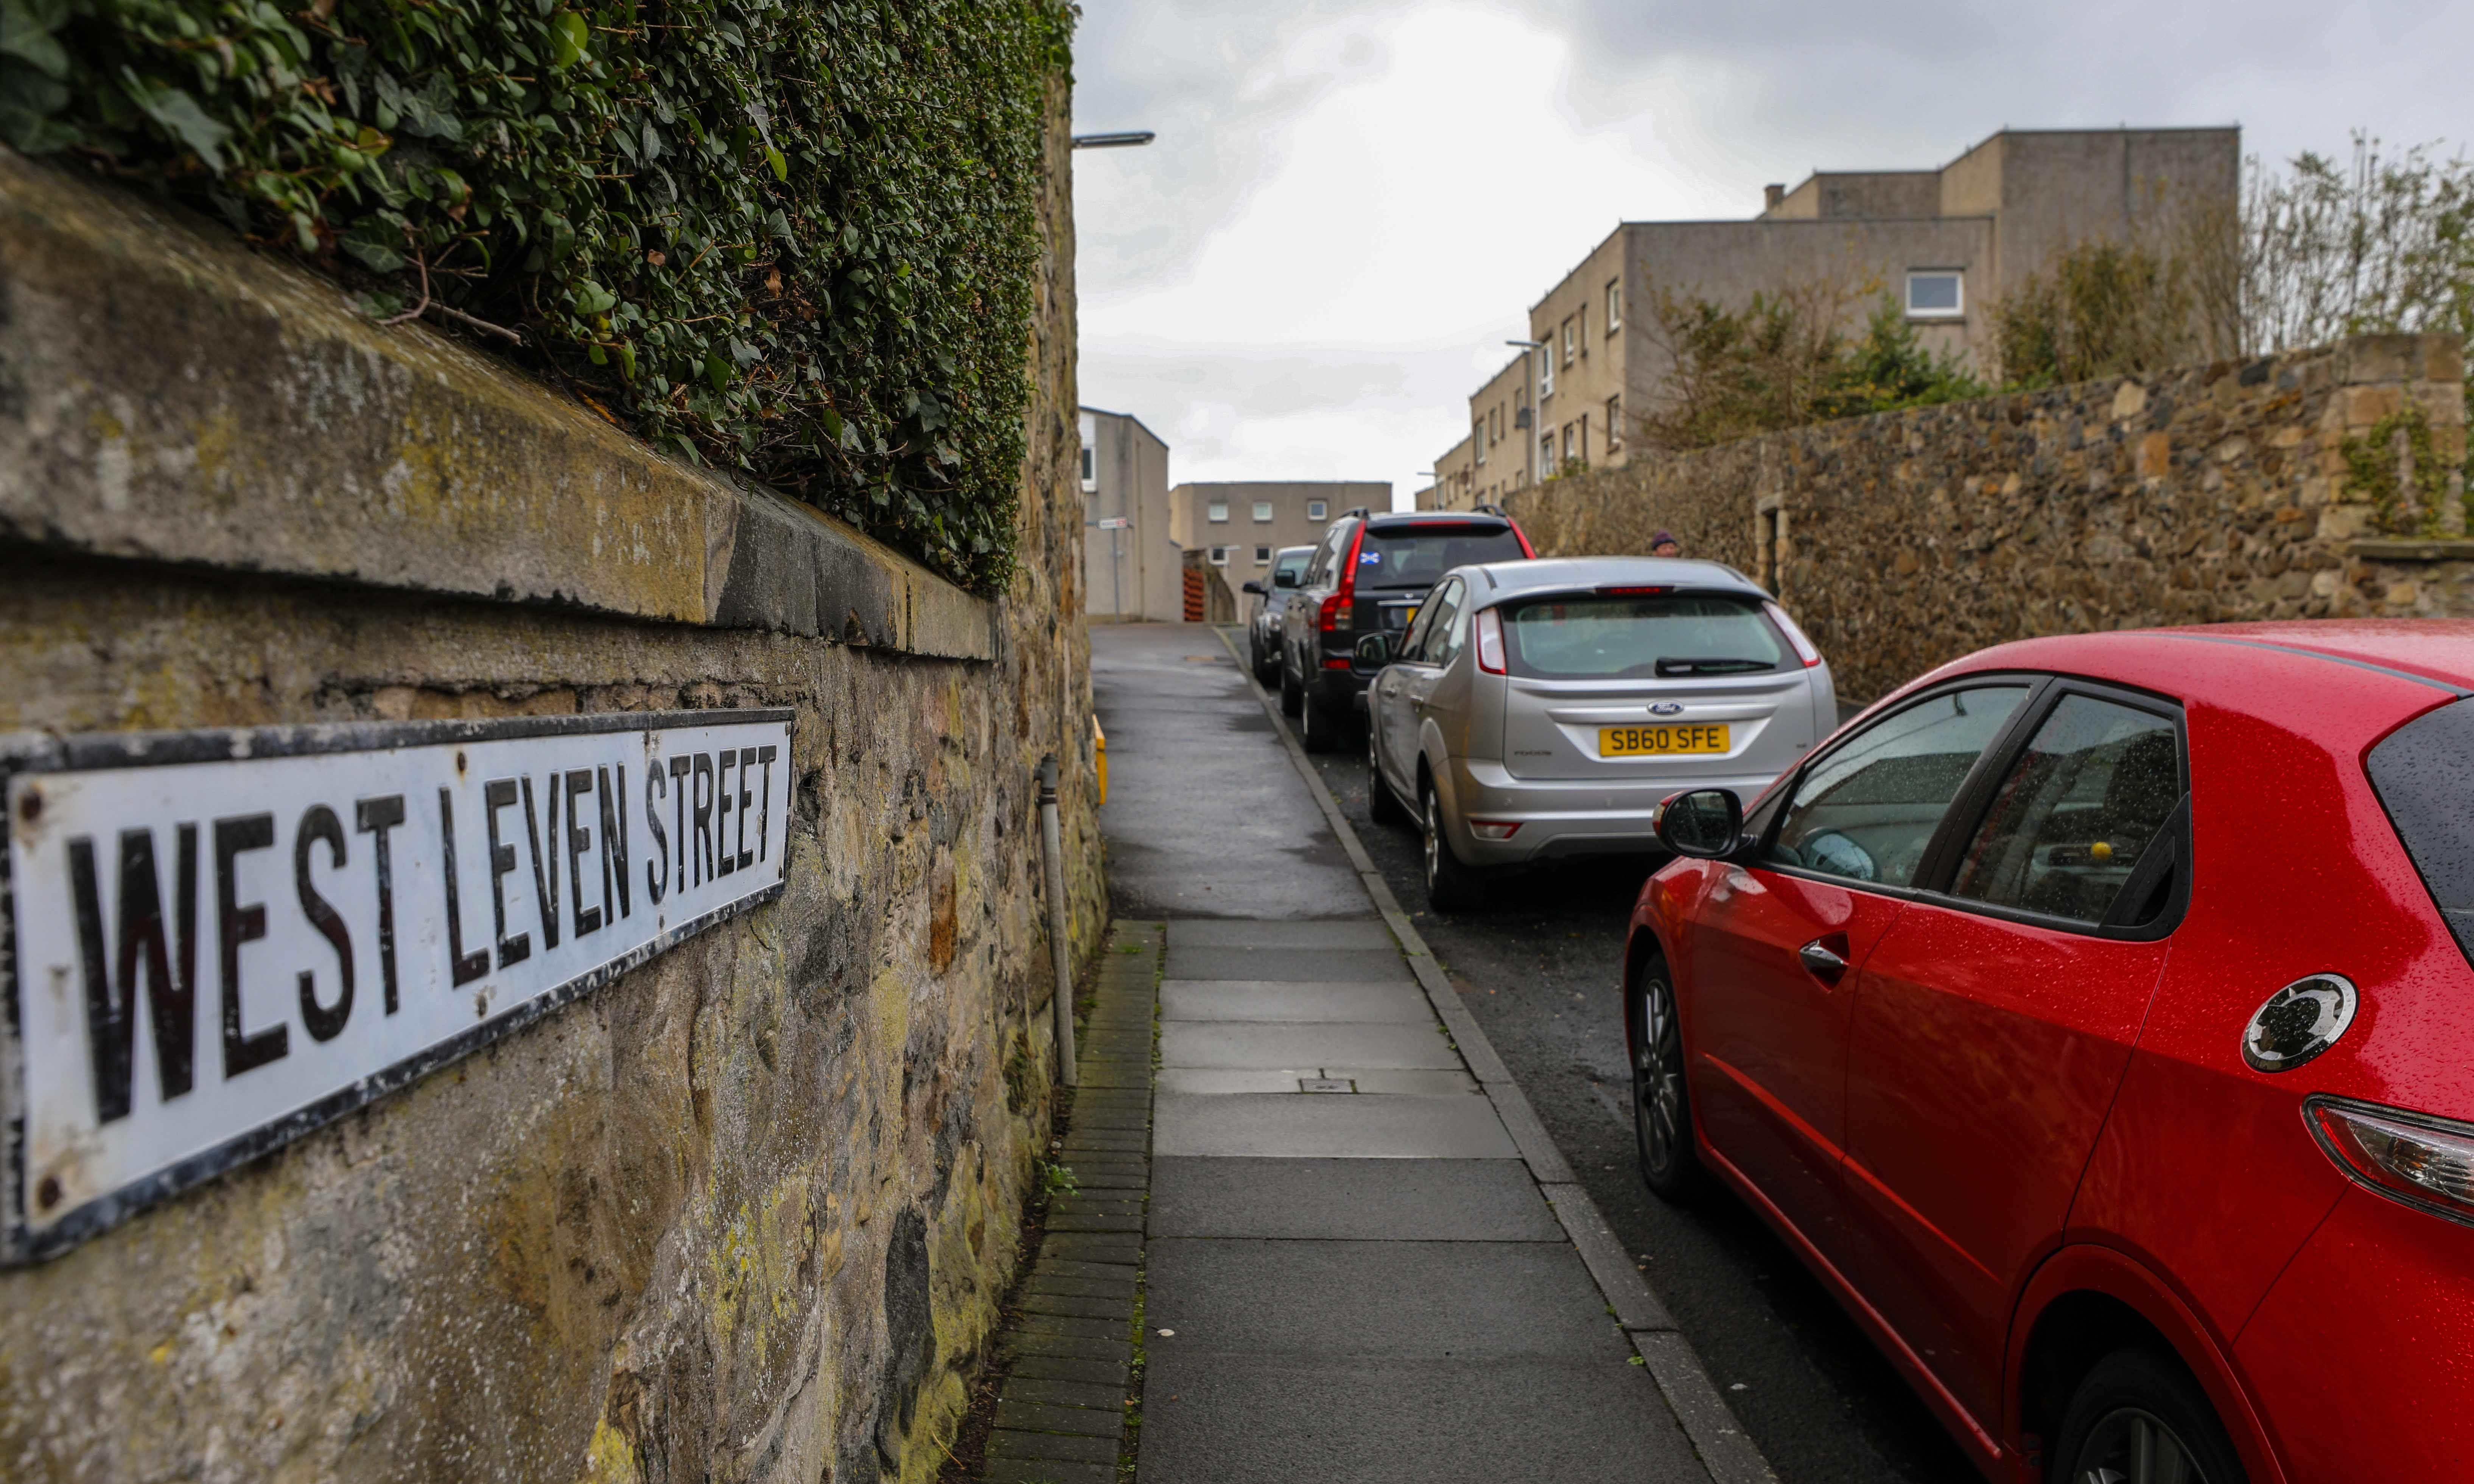 West Leven Street is one of the streets affected